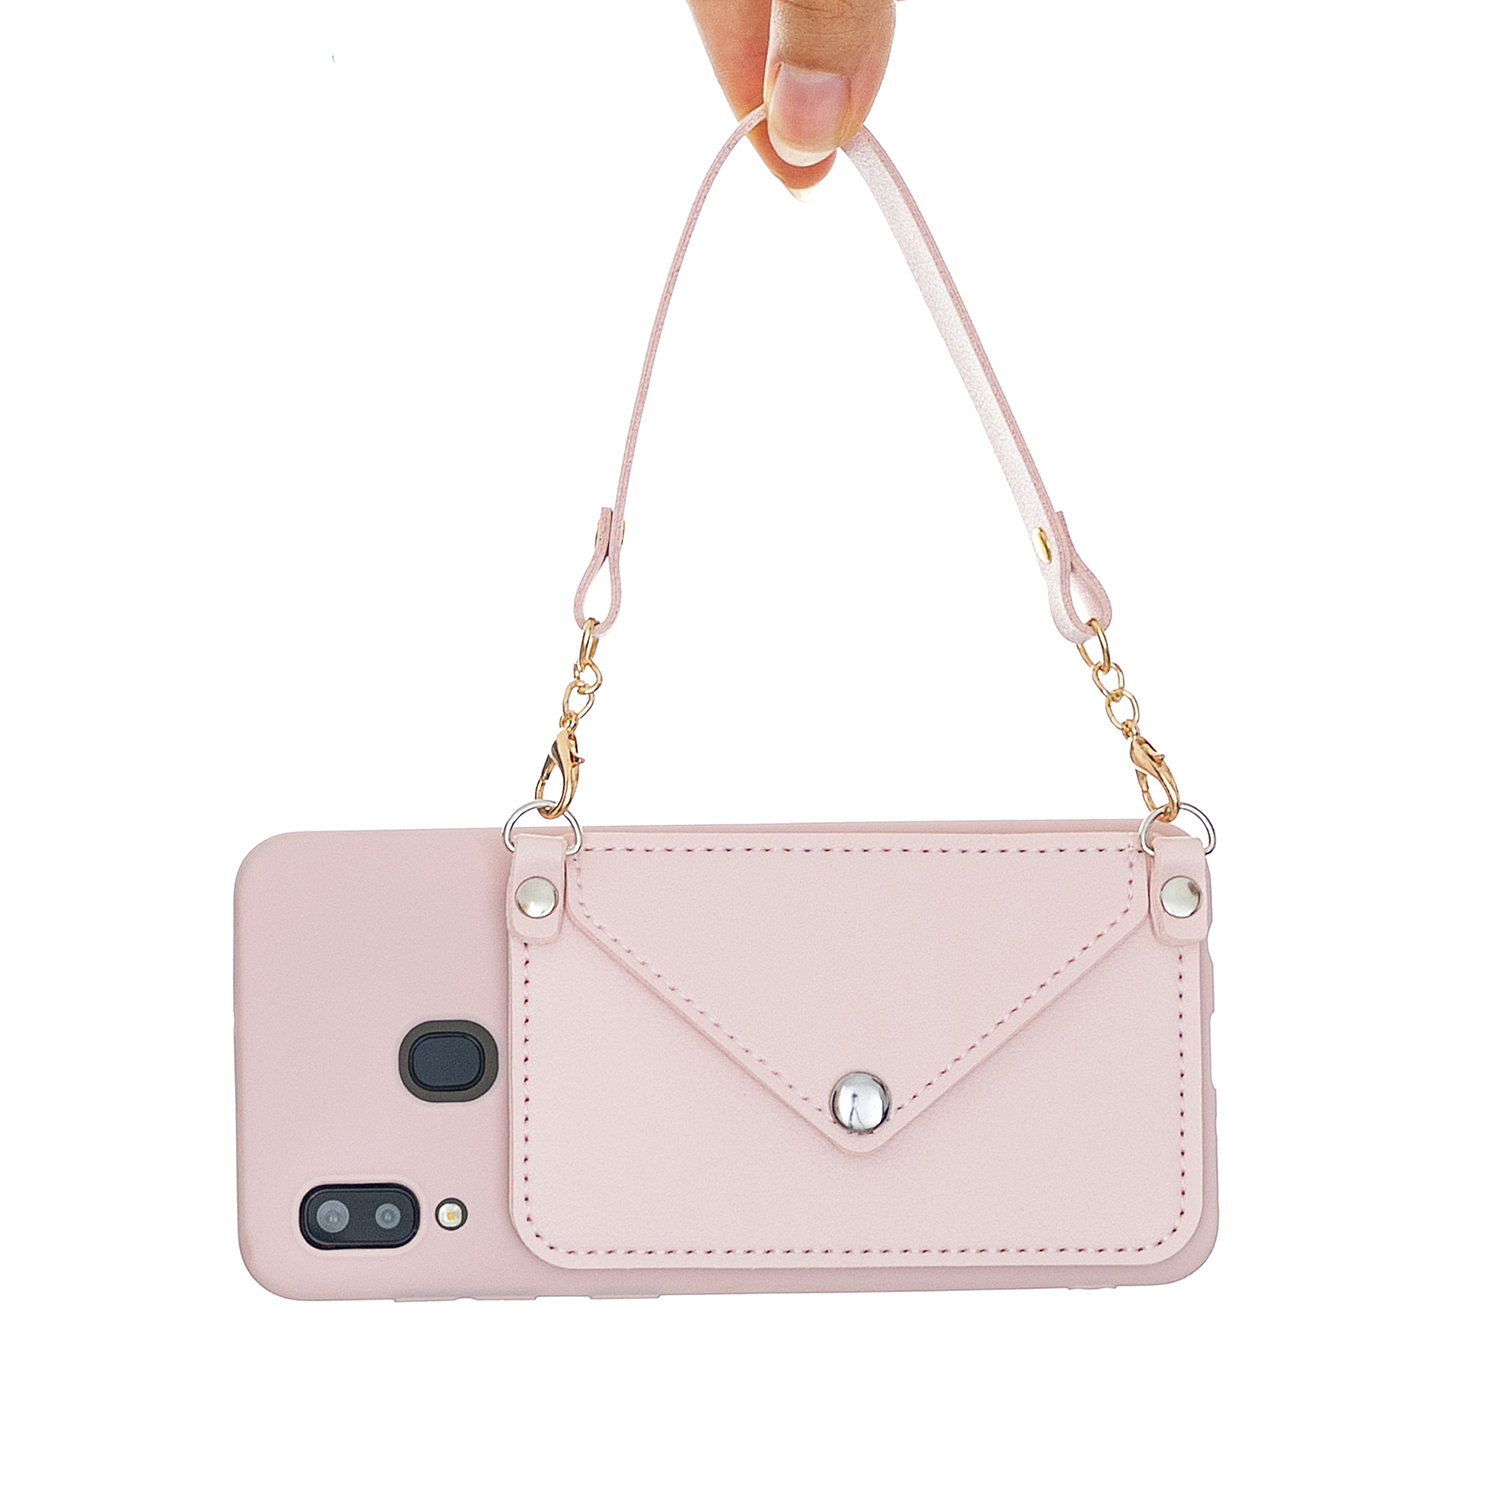 For HUAWEI P20/ P20 Lite/P20 Pro Mobile Phone Cover with Pu Leather Card Holder + Hand Rope + Straddle Rope Pink